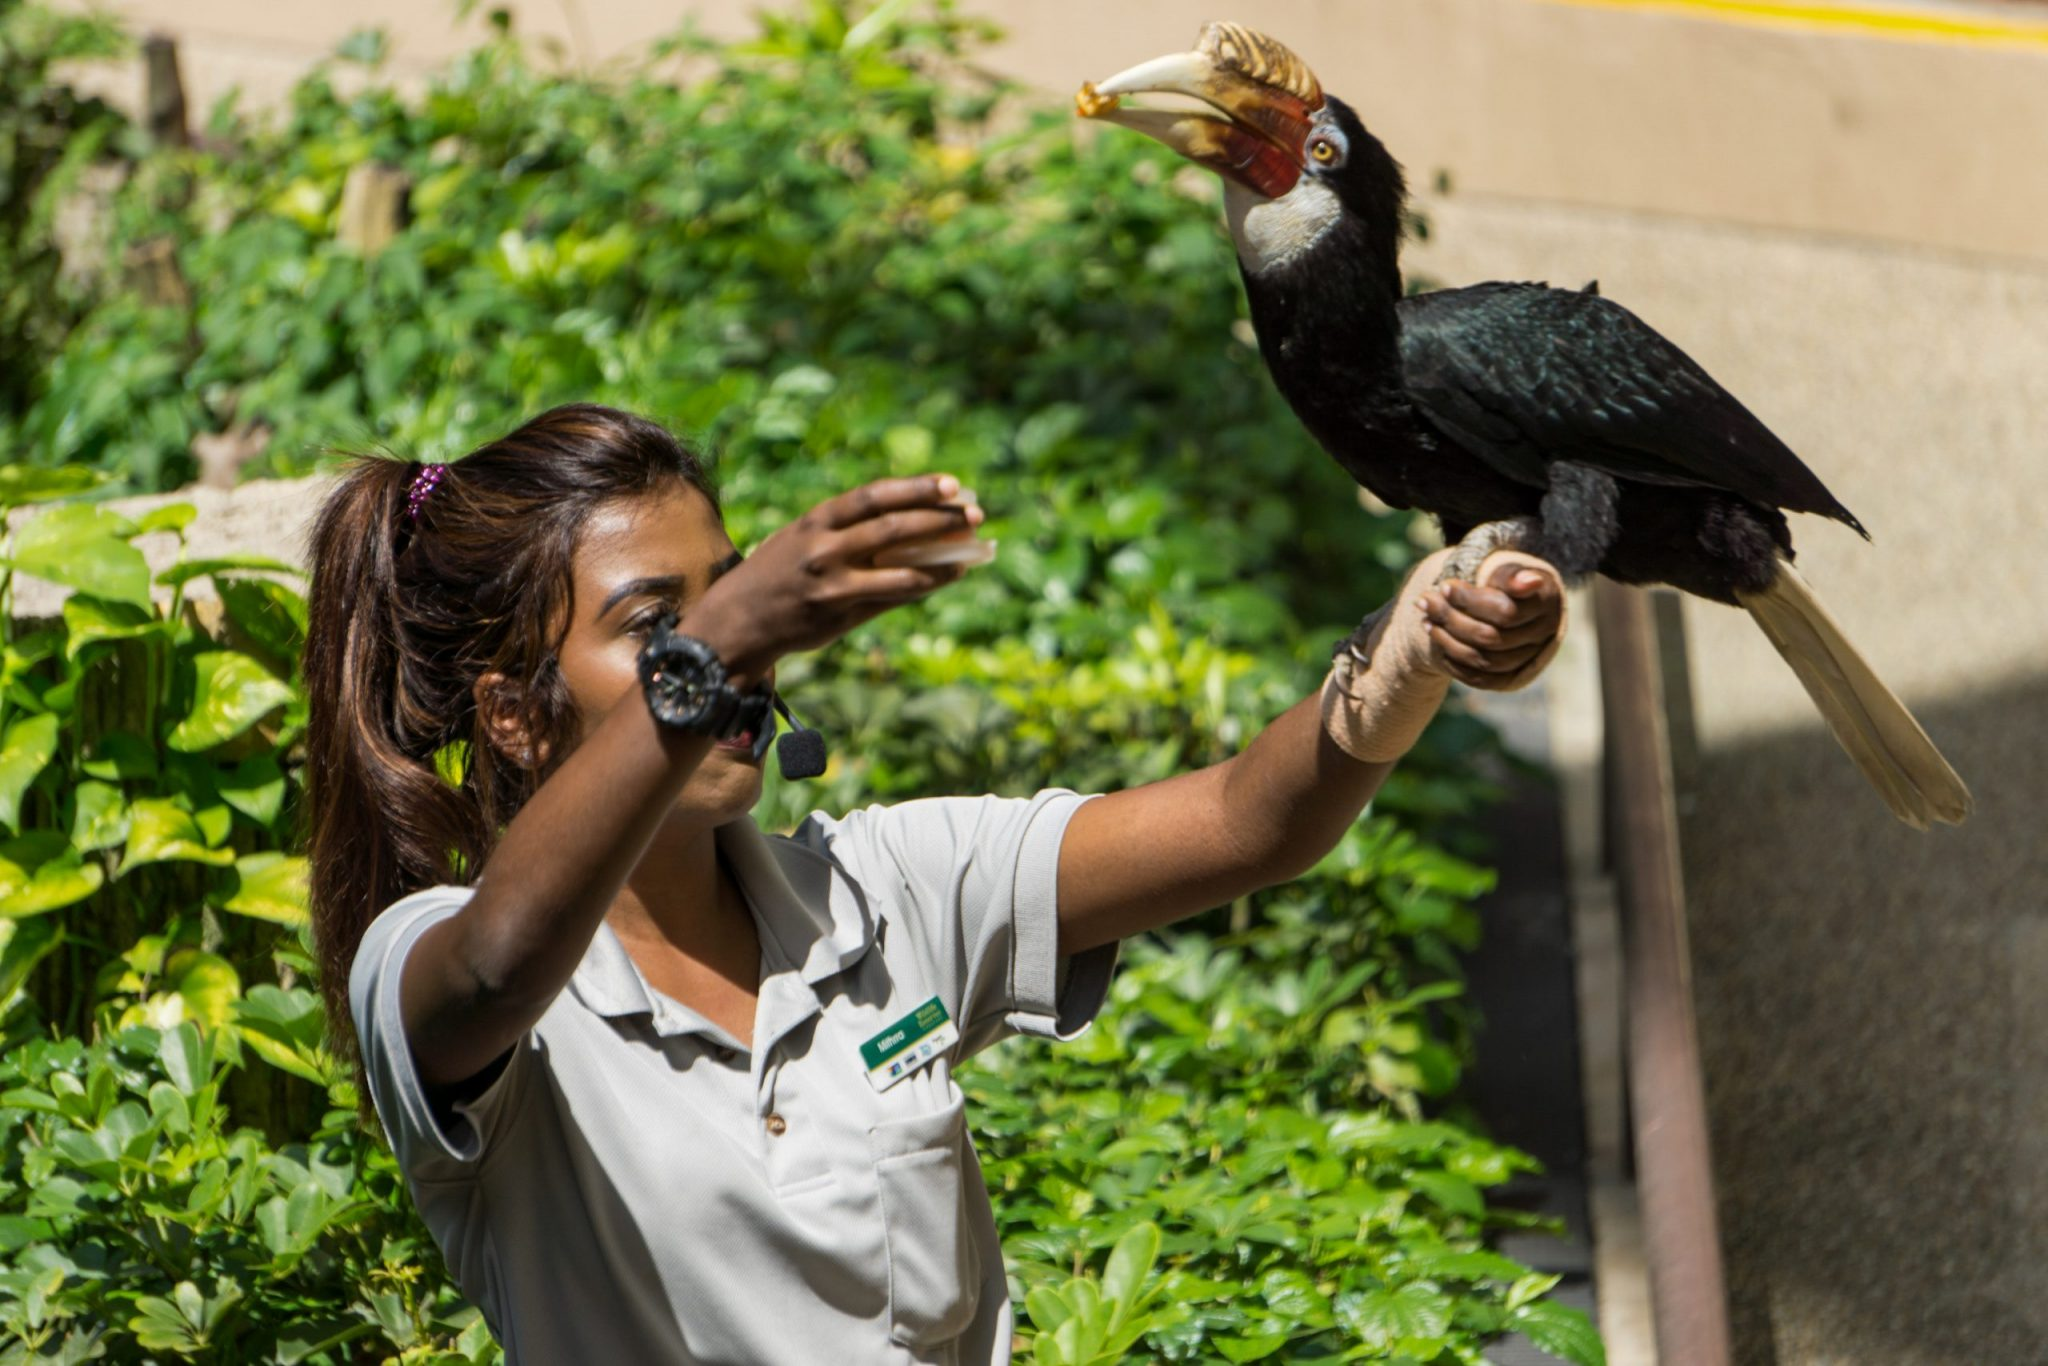 Trained Great Hornbill